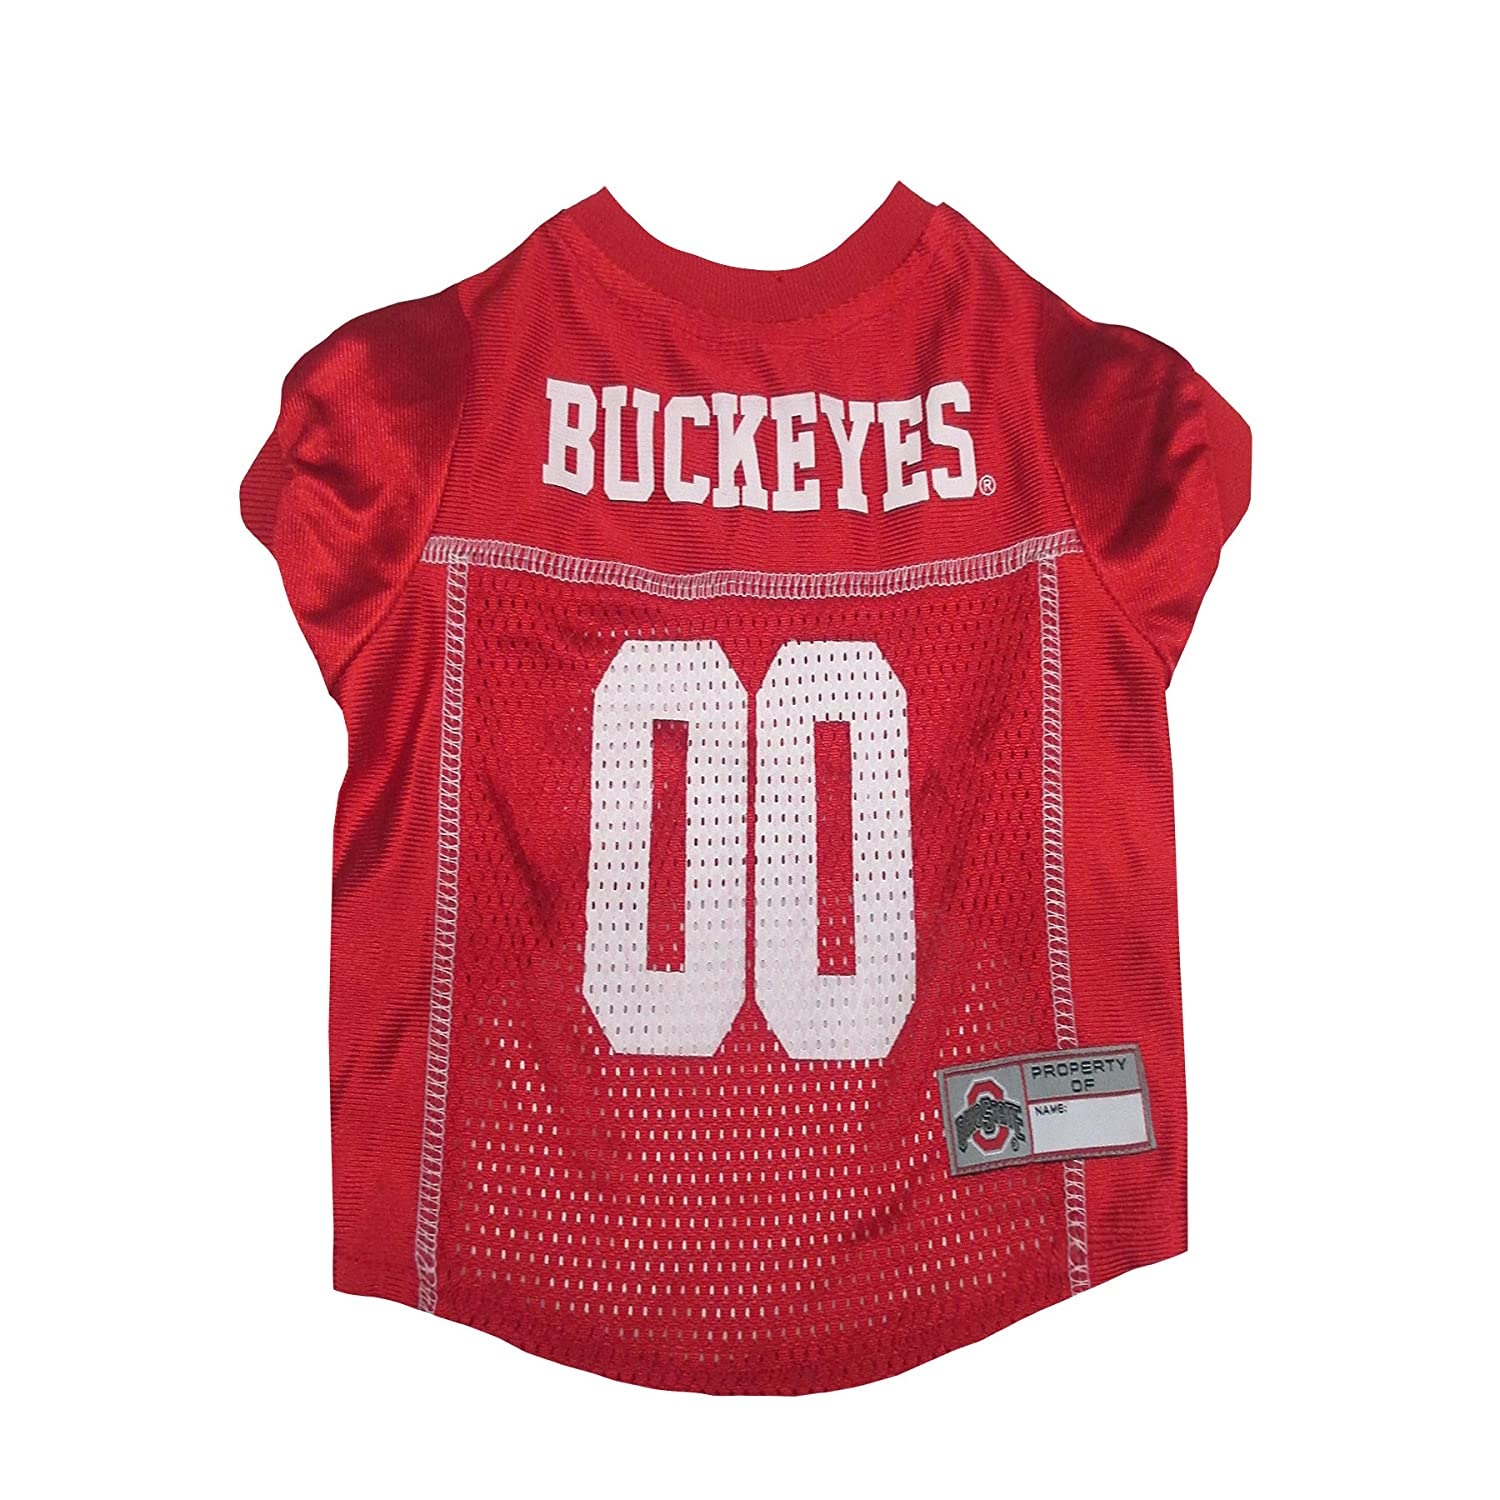 buy popular ea13c 3176a Pets First NCAA PET Apparels - Basketball Jerseys, Football Jerseys for  Dogs & Cats Available in 50+ Collegiate Teams & 7 Sizes